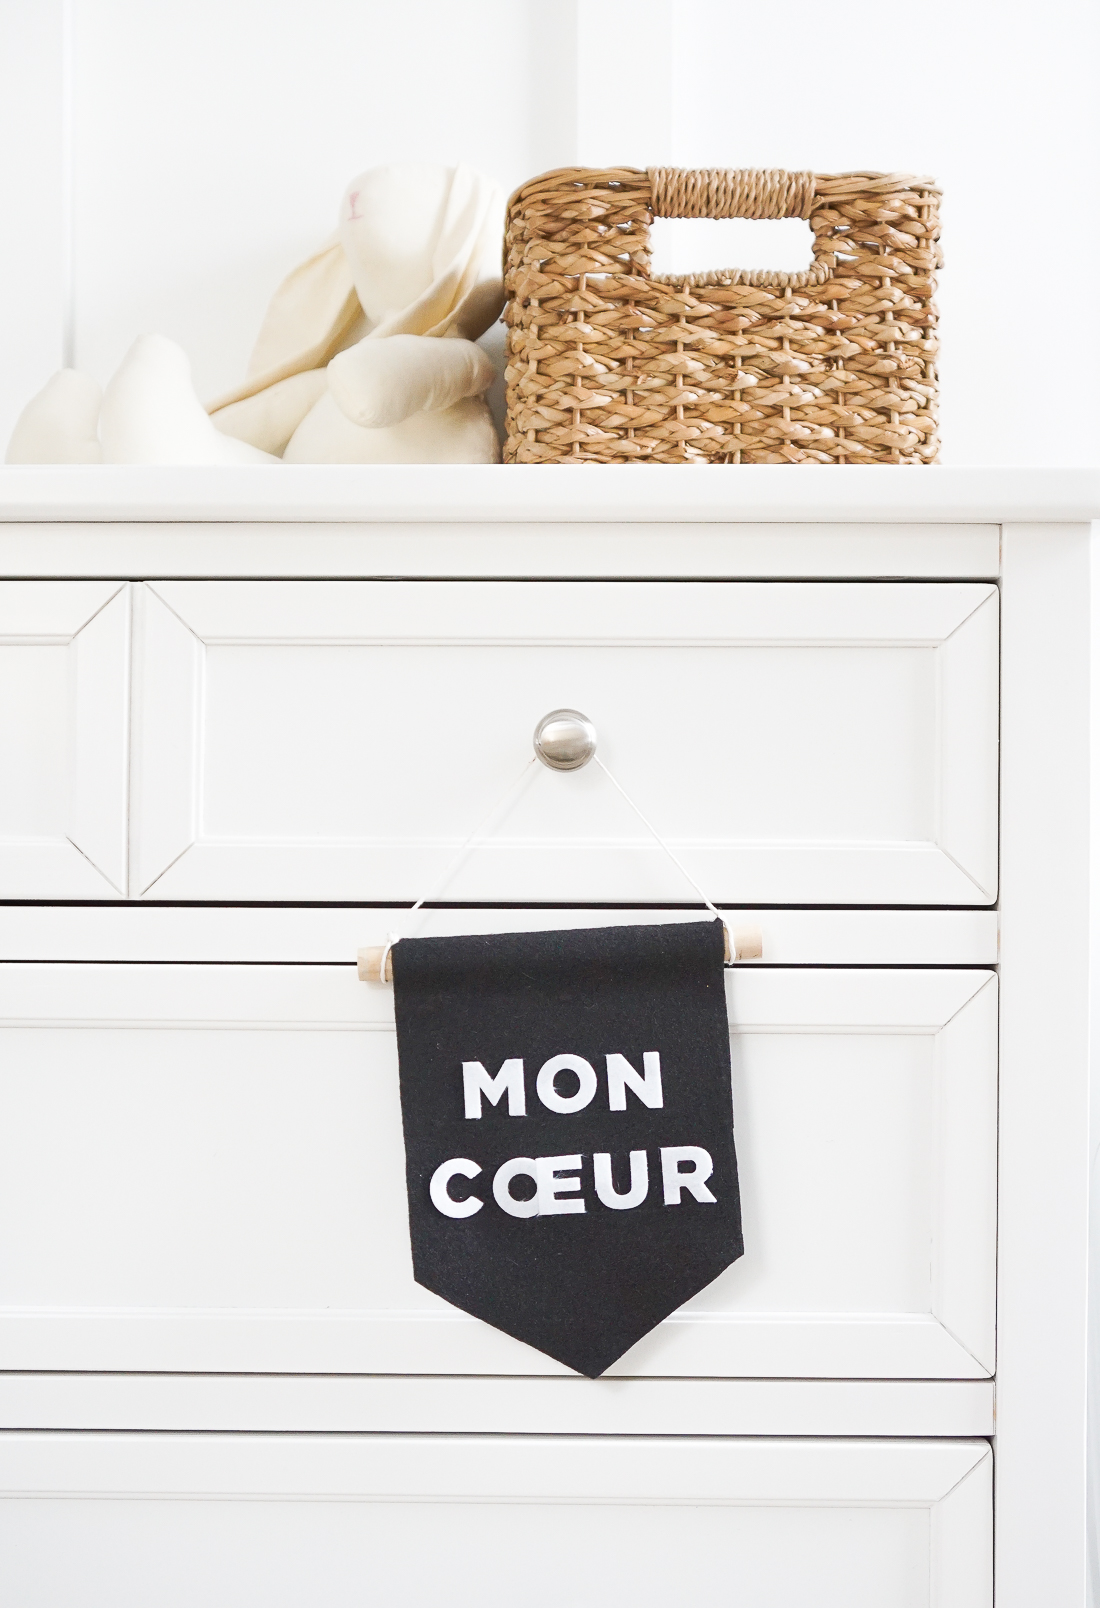 Follow our 1 minute video tutorial to create this mini felt message banner for your office, nursery, or just about anywhere. Click for the video!